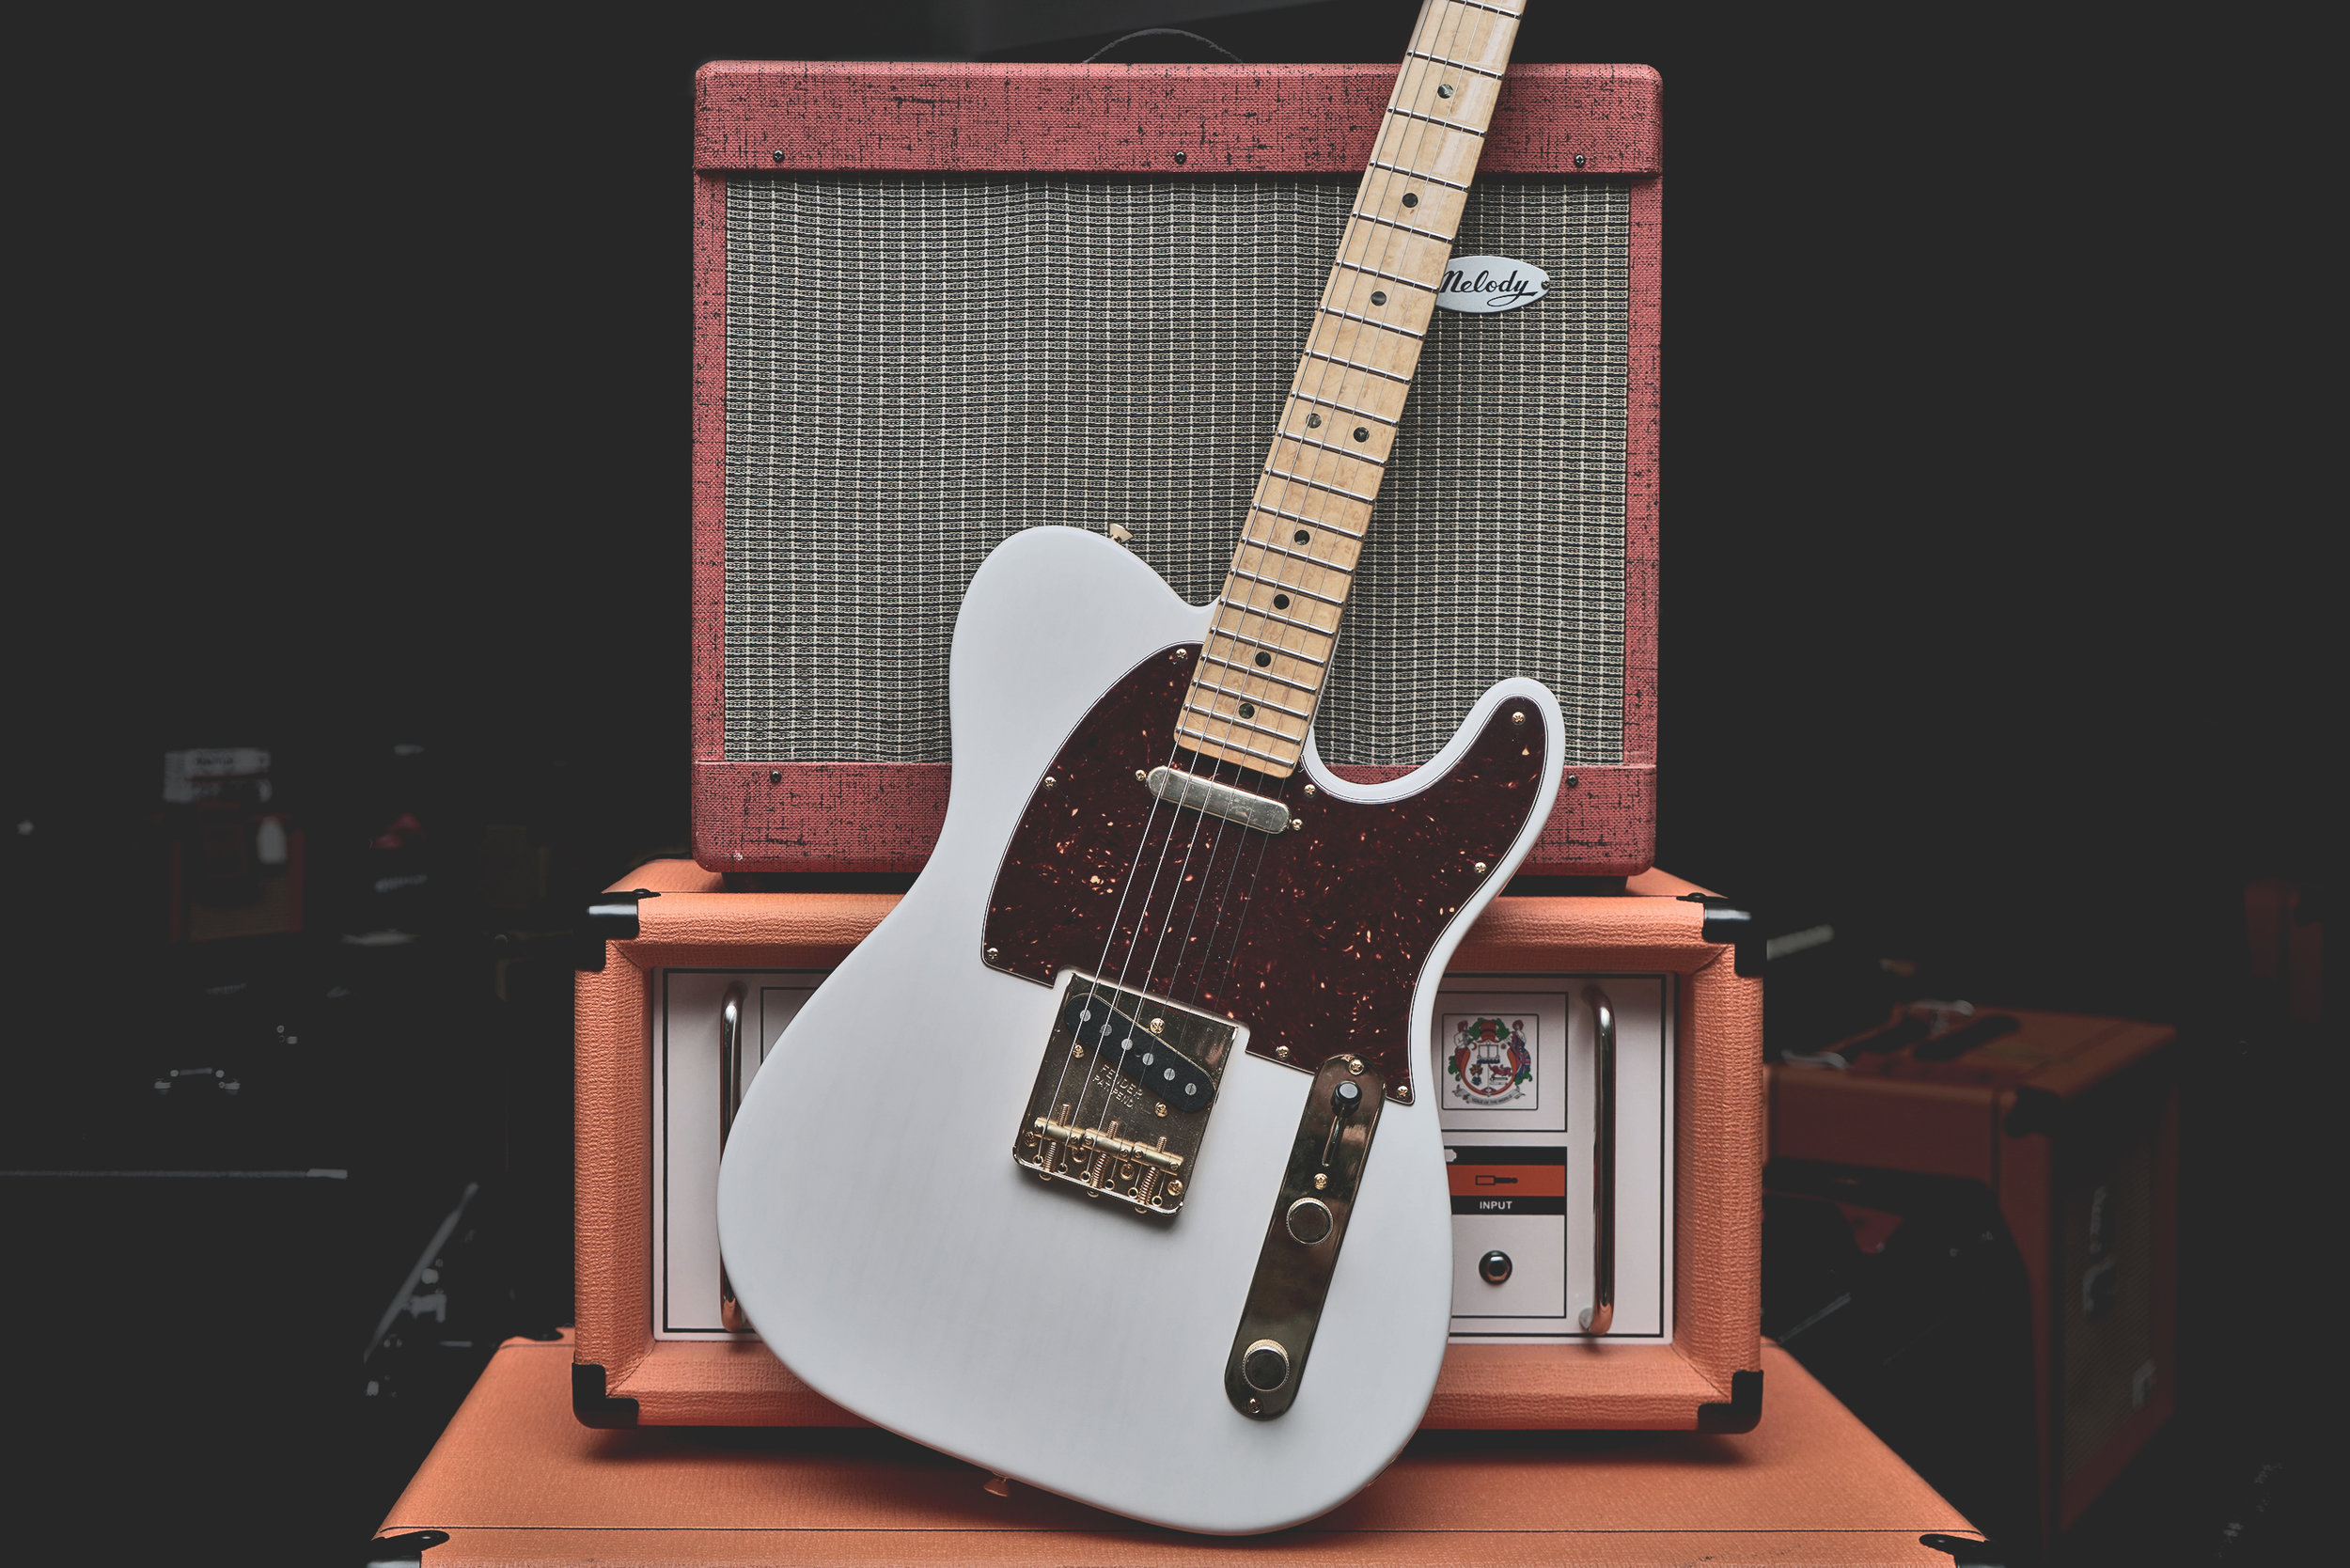 jz-fender-tele-orange.jpg